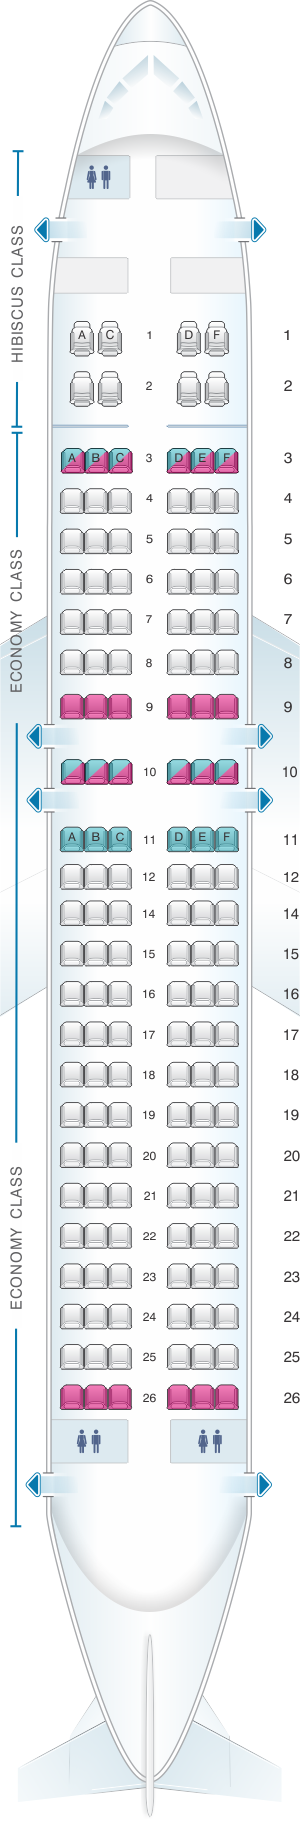 Seat map for Aircalin Airbus A320